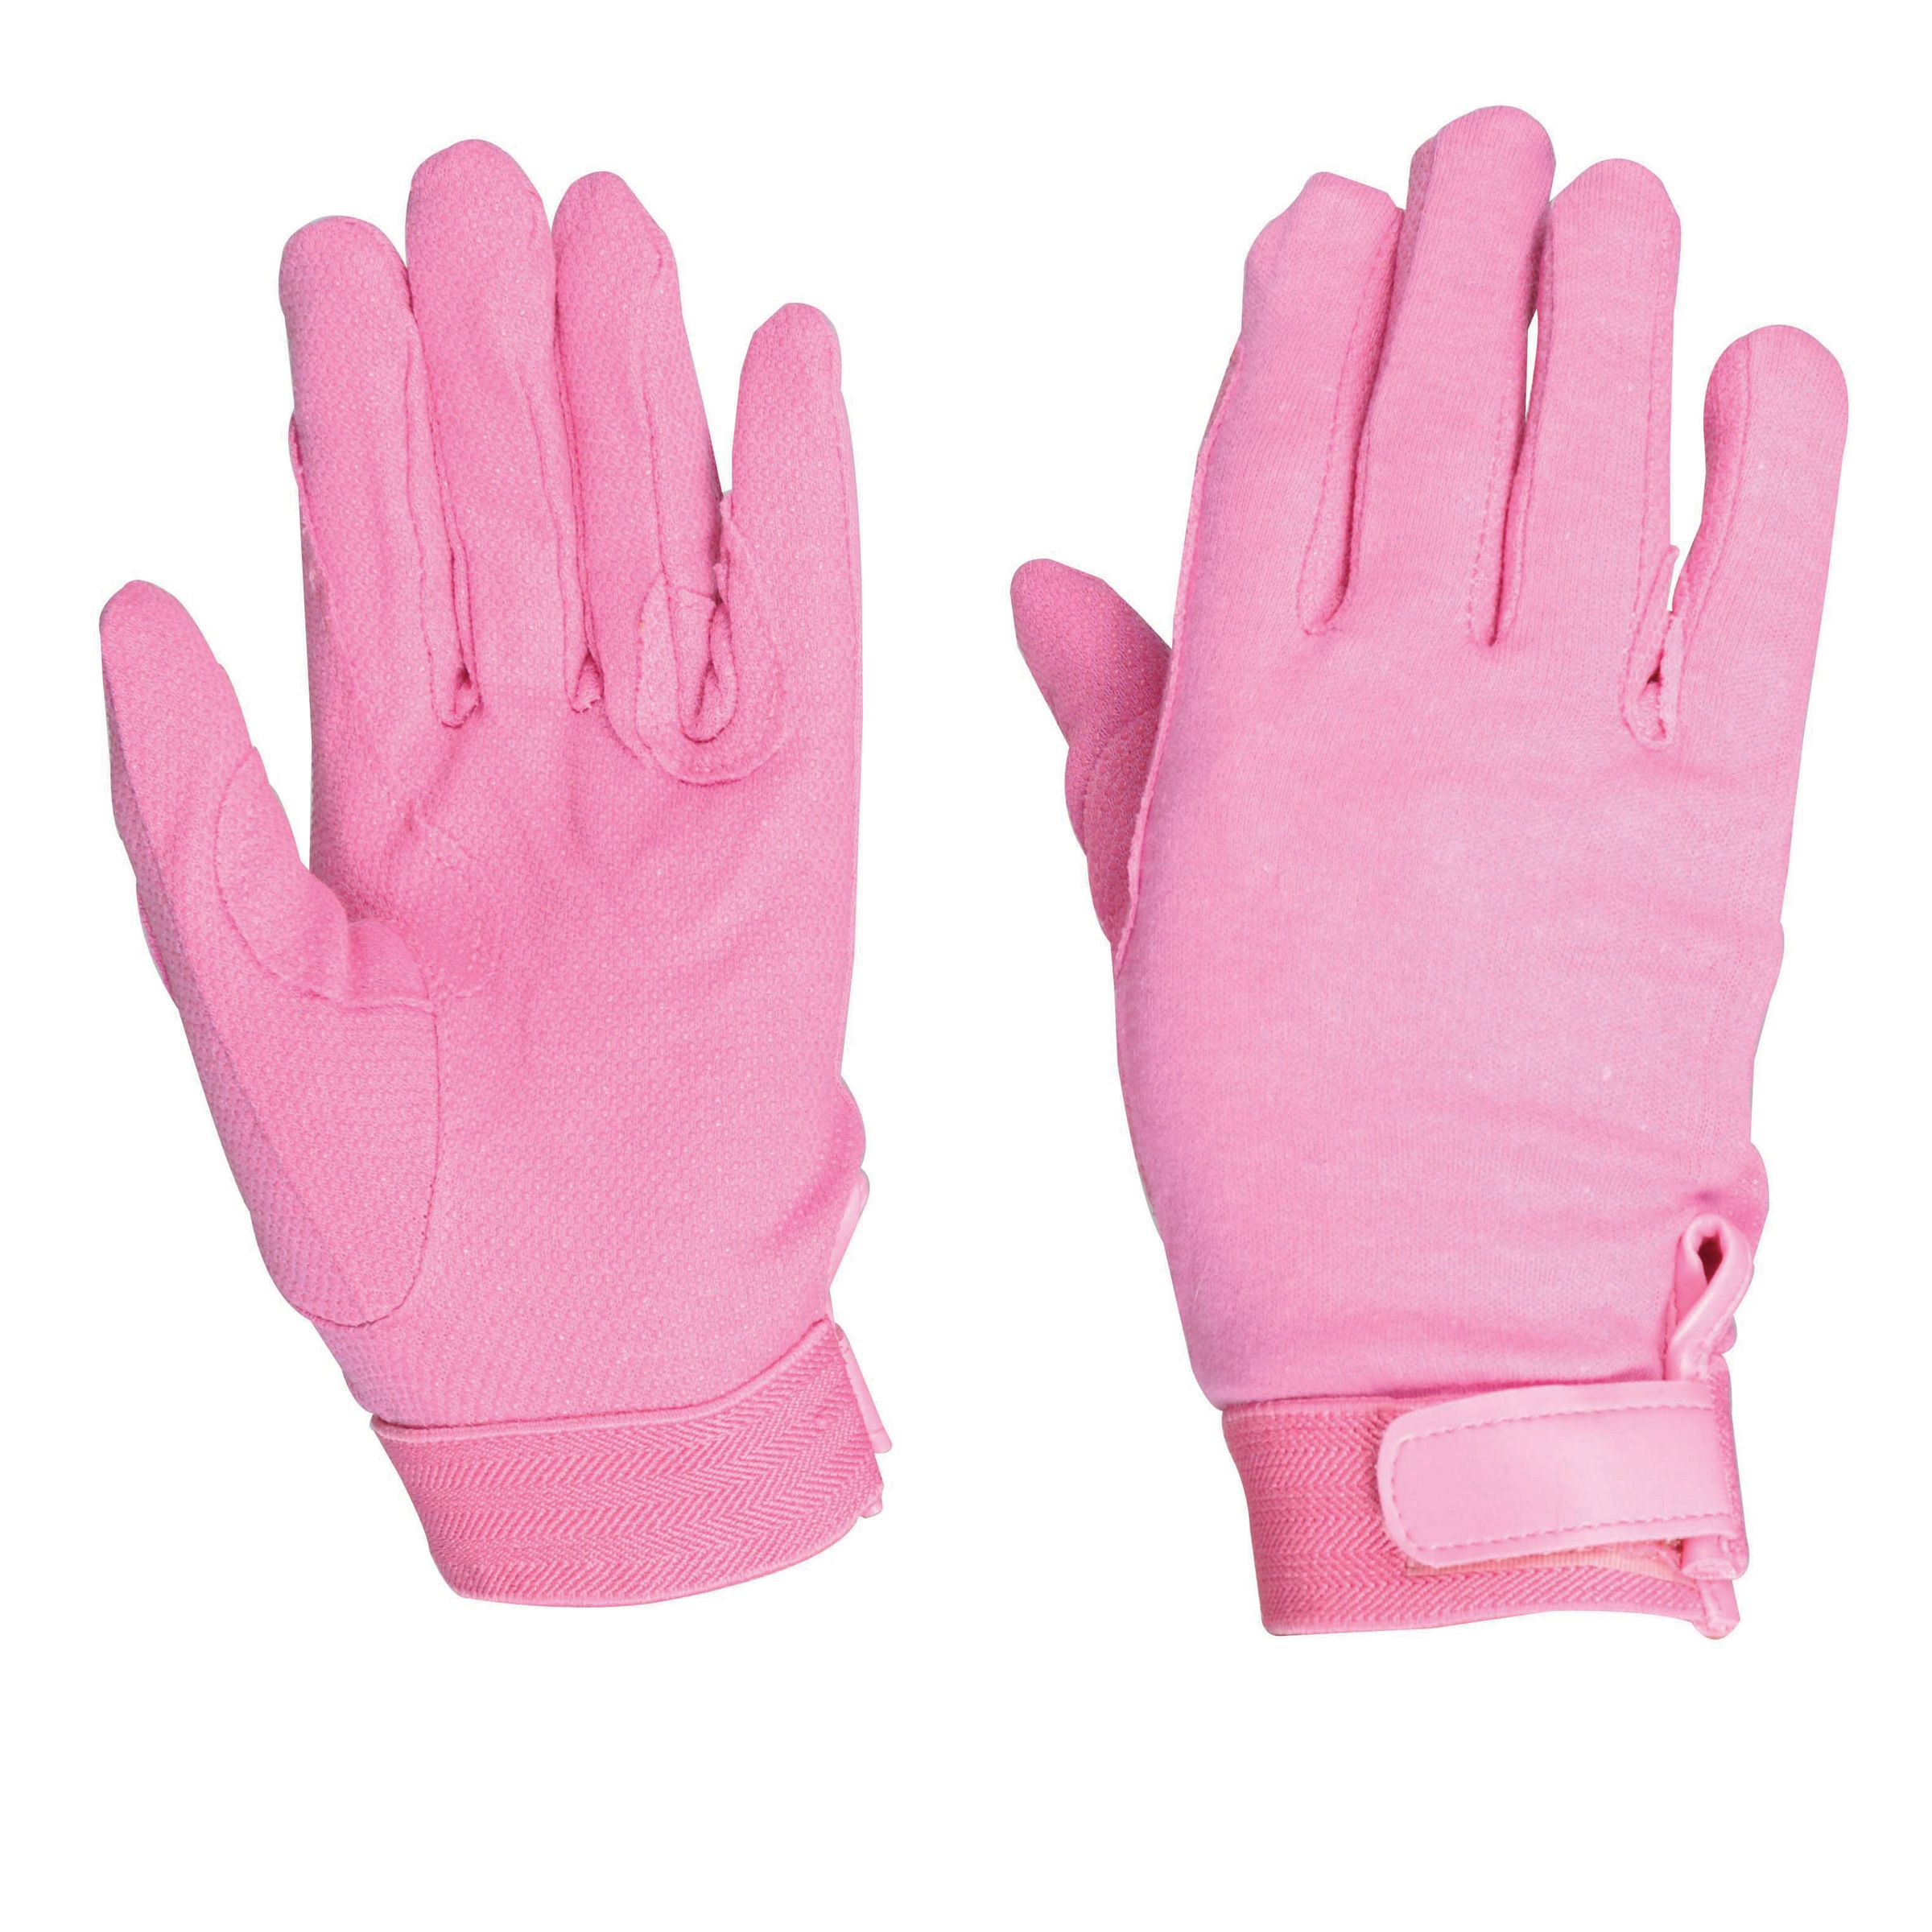 Dublin Track Riding Gloves - Pink